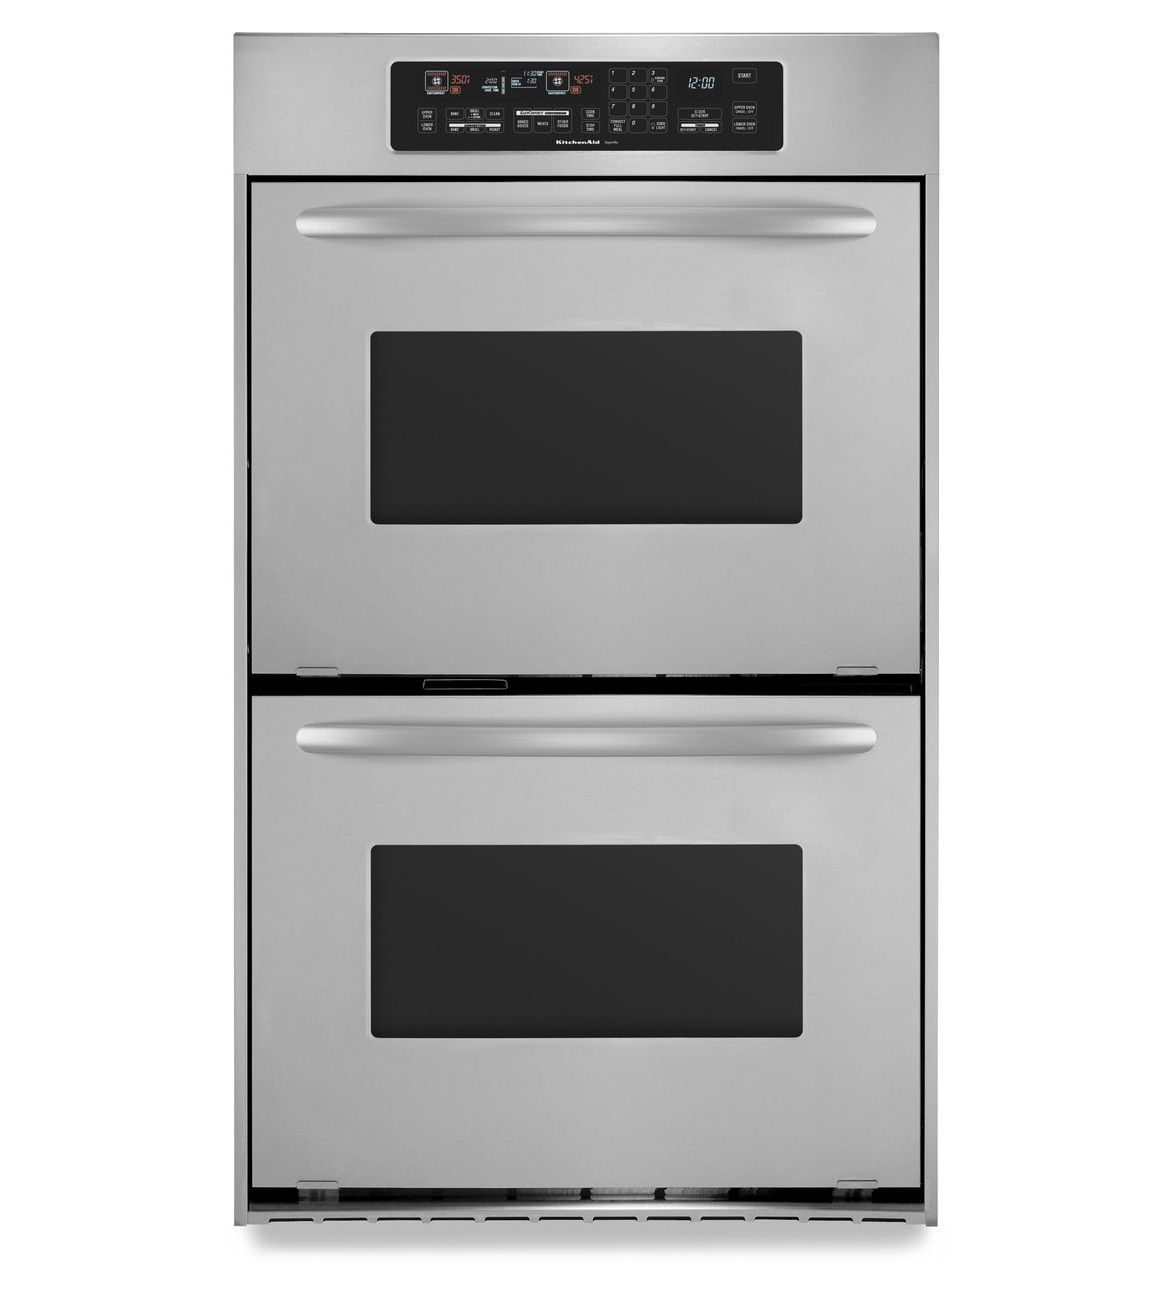 Kitchenaid 24 Inch Convection Double Wall Oven Architect Series Ii Handles Kebc247vss Stainle Double Electric Wall Oven Double Wall Oven Electric Wall Oven